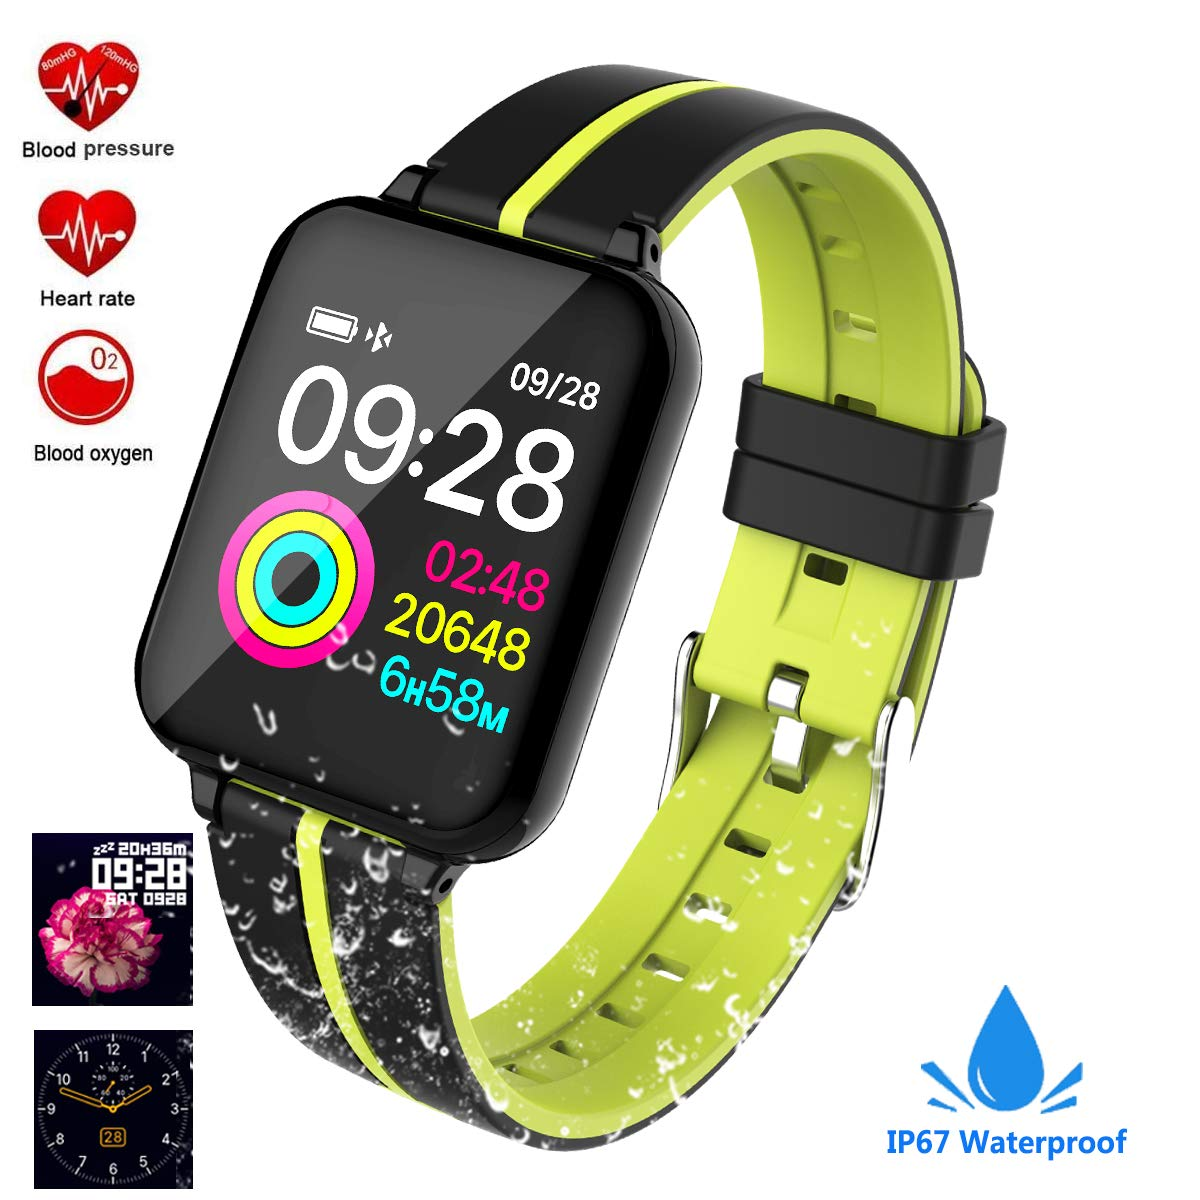 Fitness Tracker, Activity Tracker Fitness Watch with Heart Rate Monitor Color Screen,Waterproof Smart Bracelet with Step Counter,Calorie Counter,Pedometer for Kids Women Men Android iOS (Black/Green)